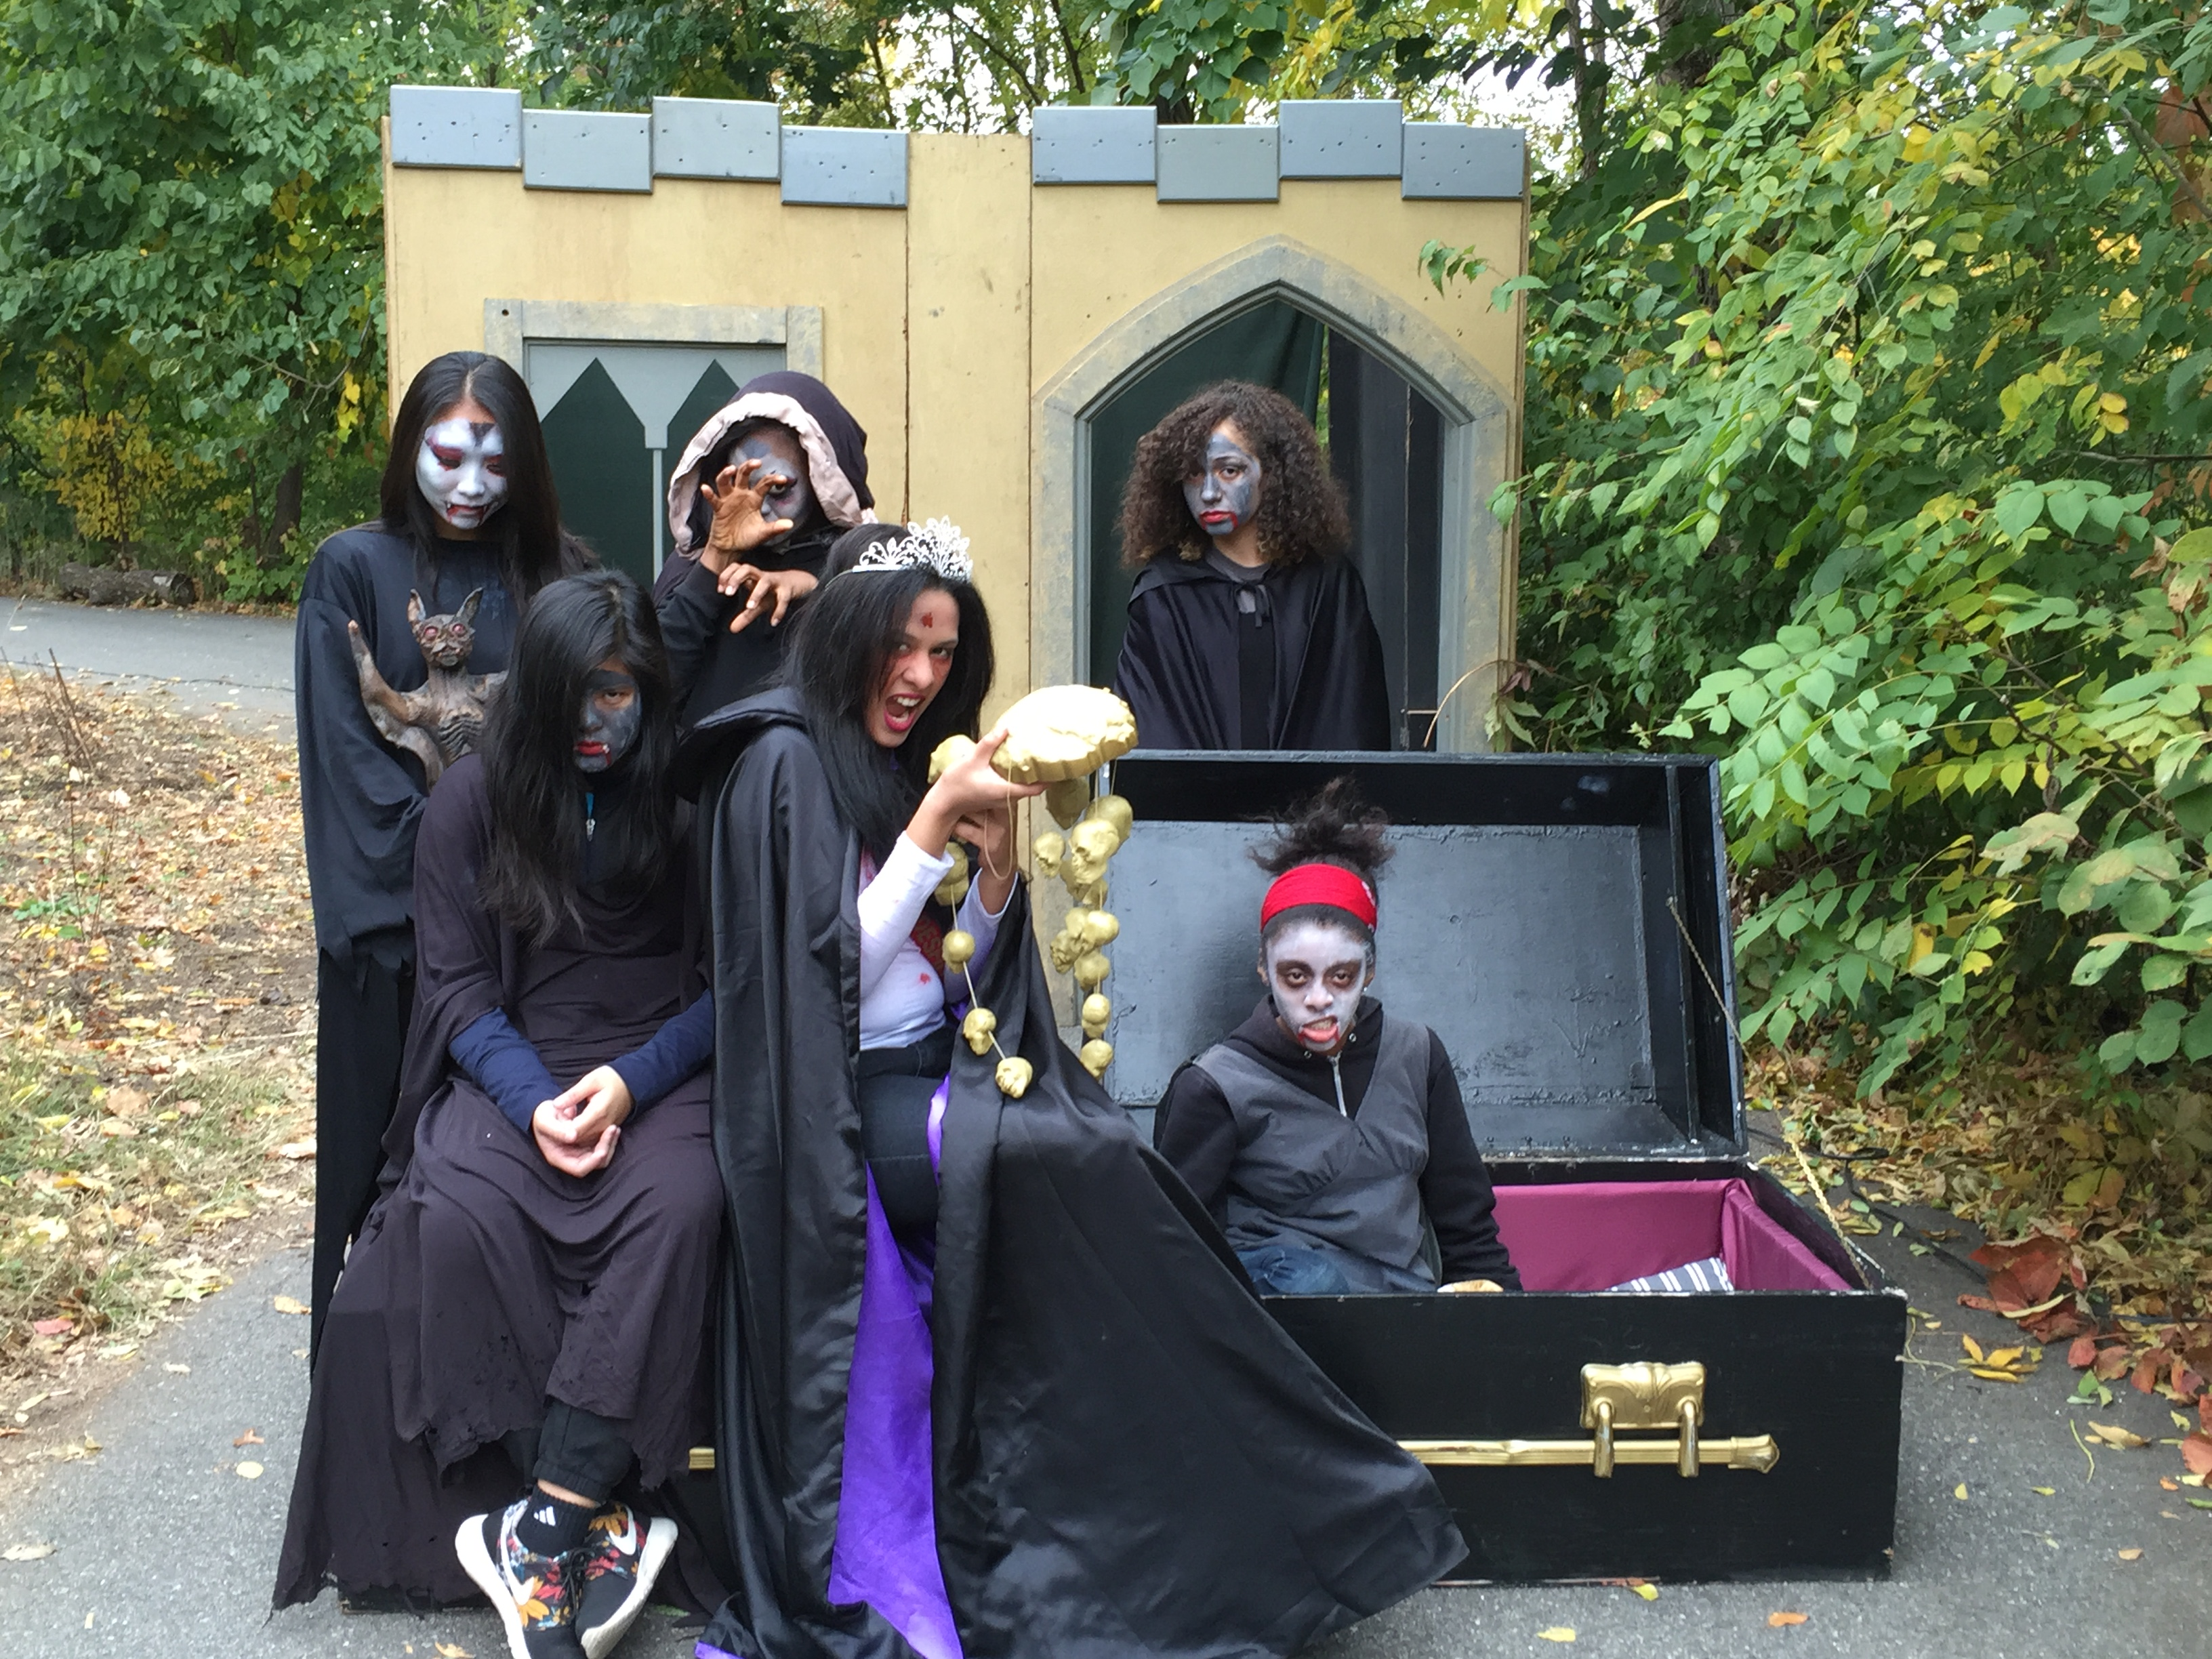 CPC Youth Spook Prospect Park Visitors for Halloween